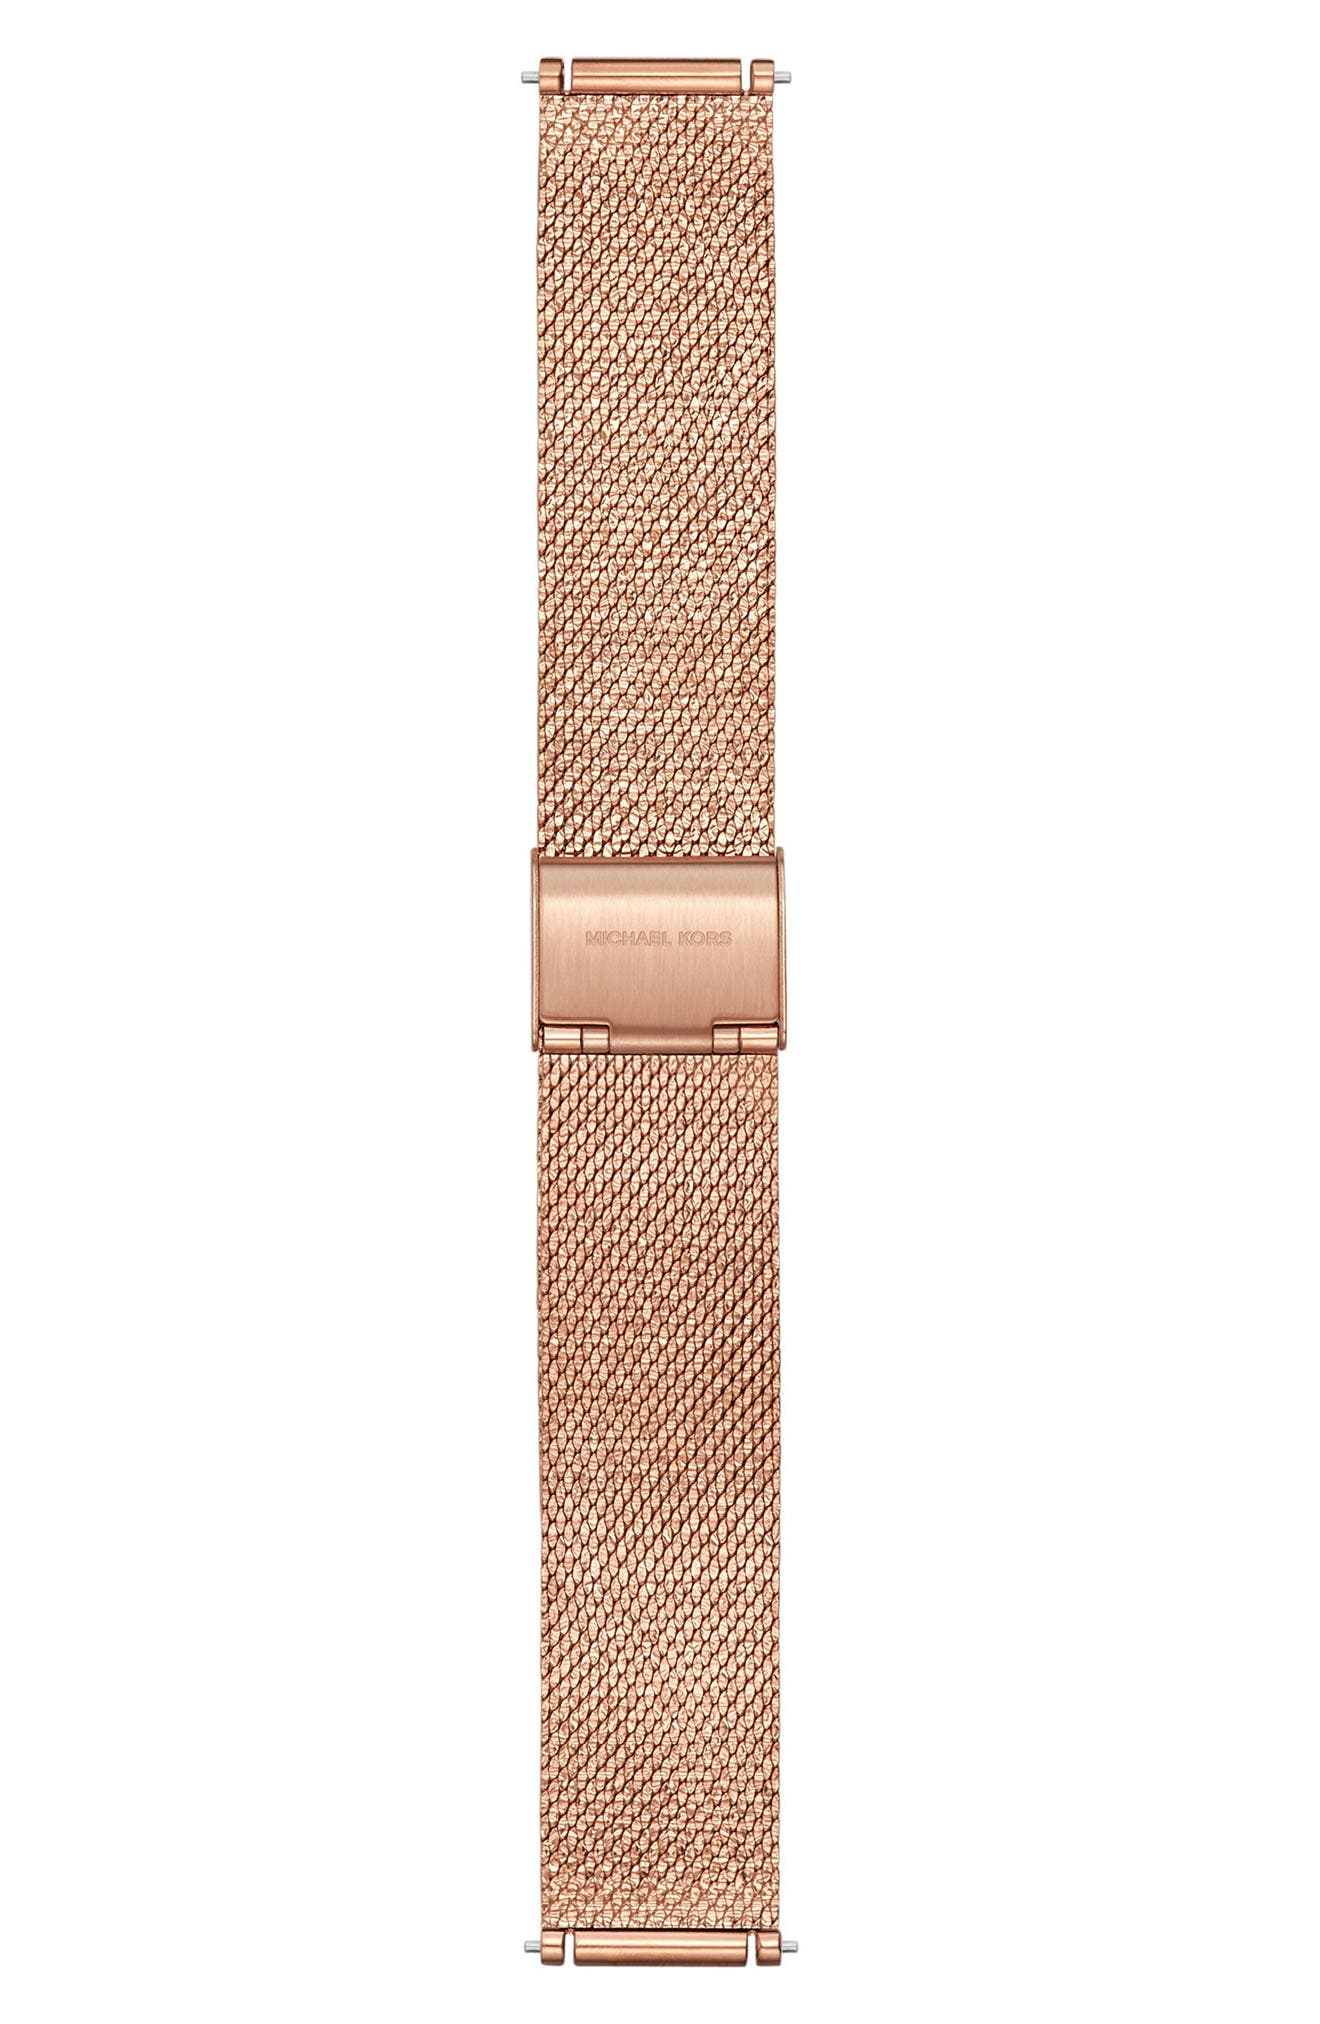 MICHAEL KORS ACCESS Sofie 18Mm Mesh Watch Strap in Rose Gold